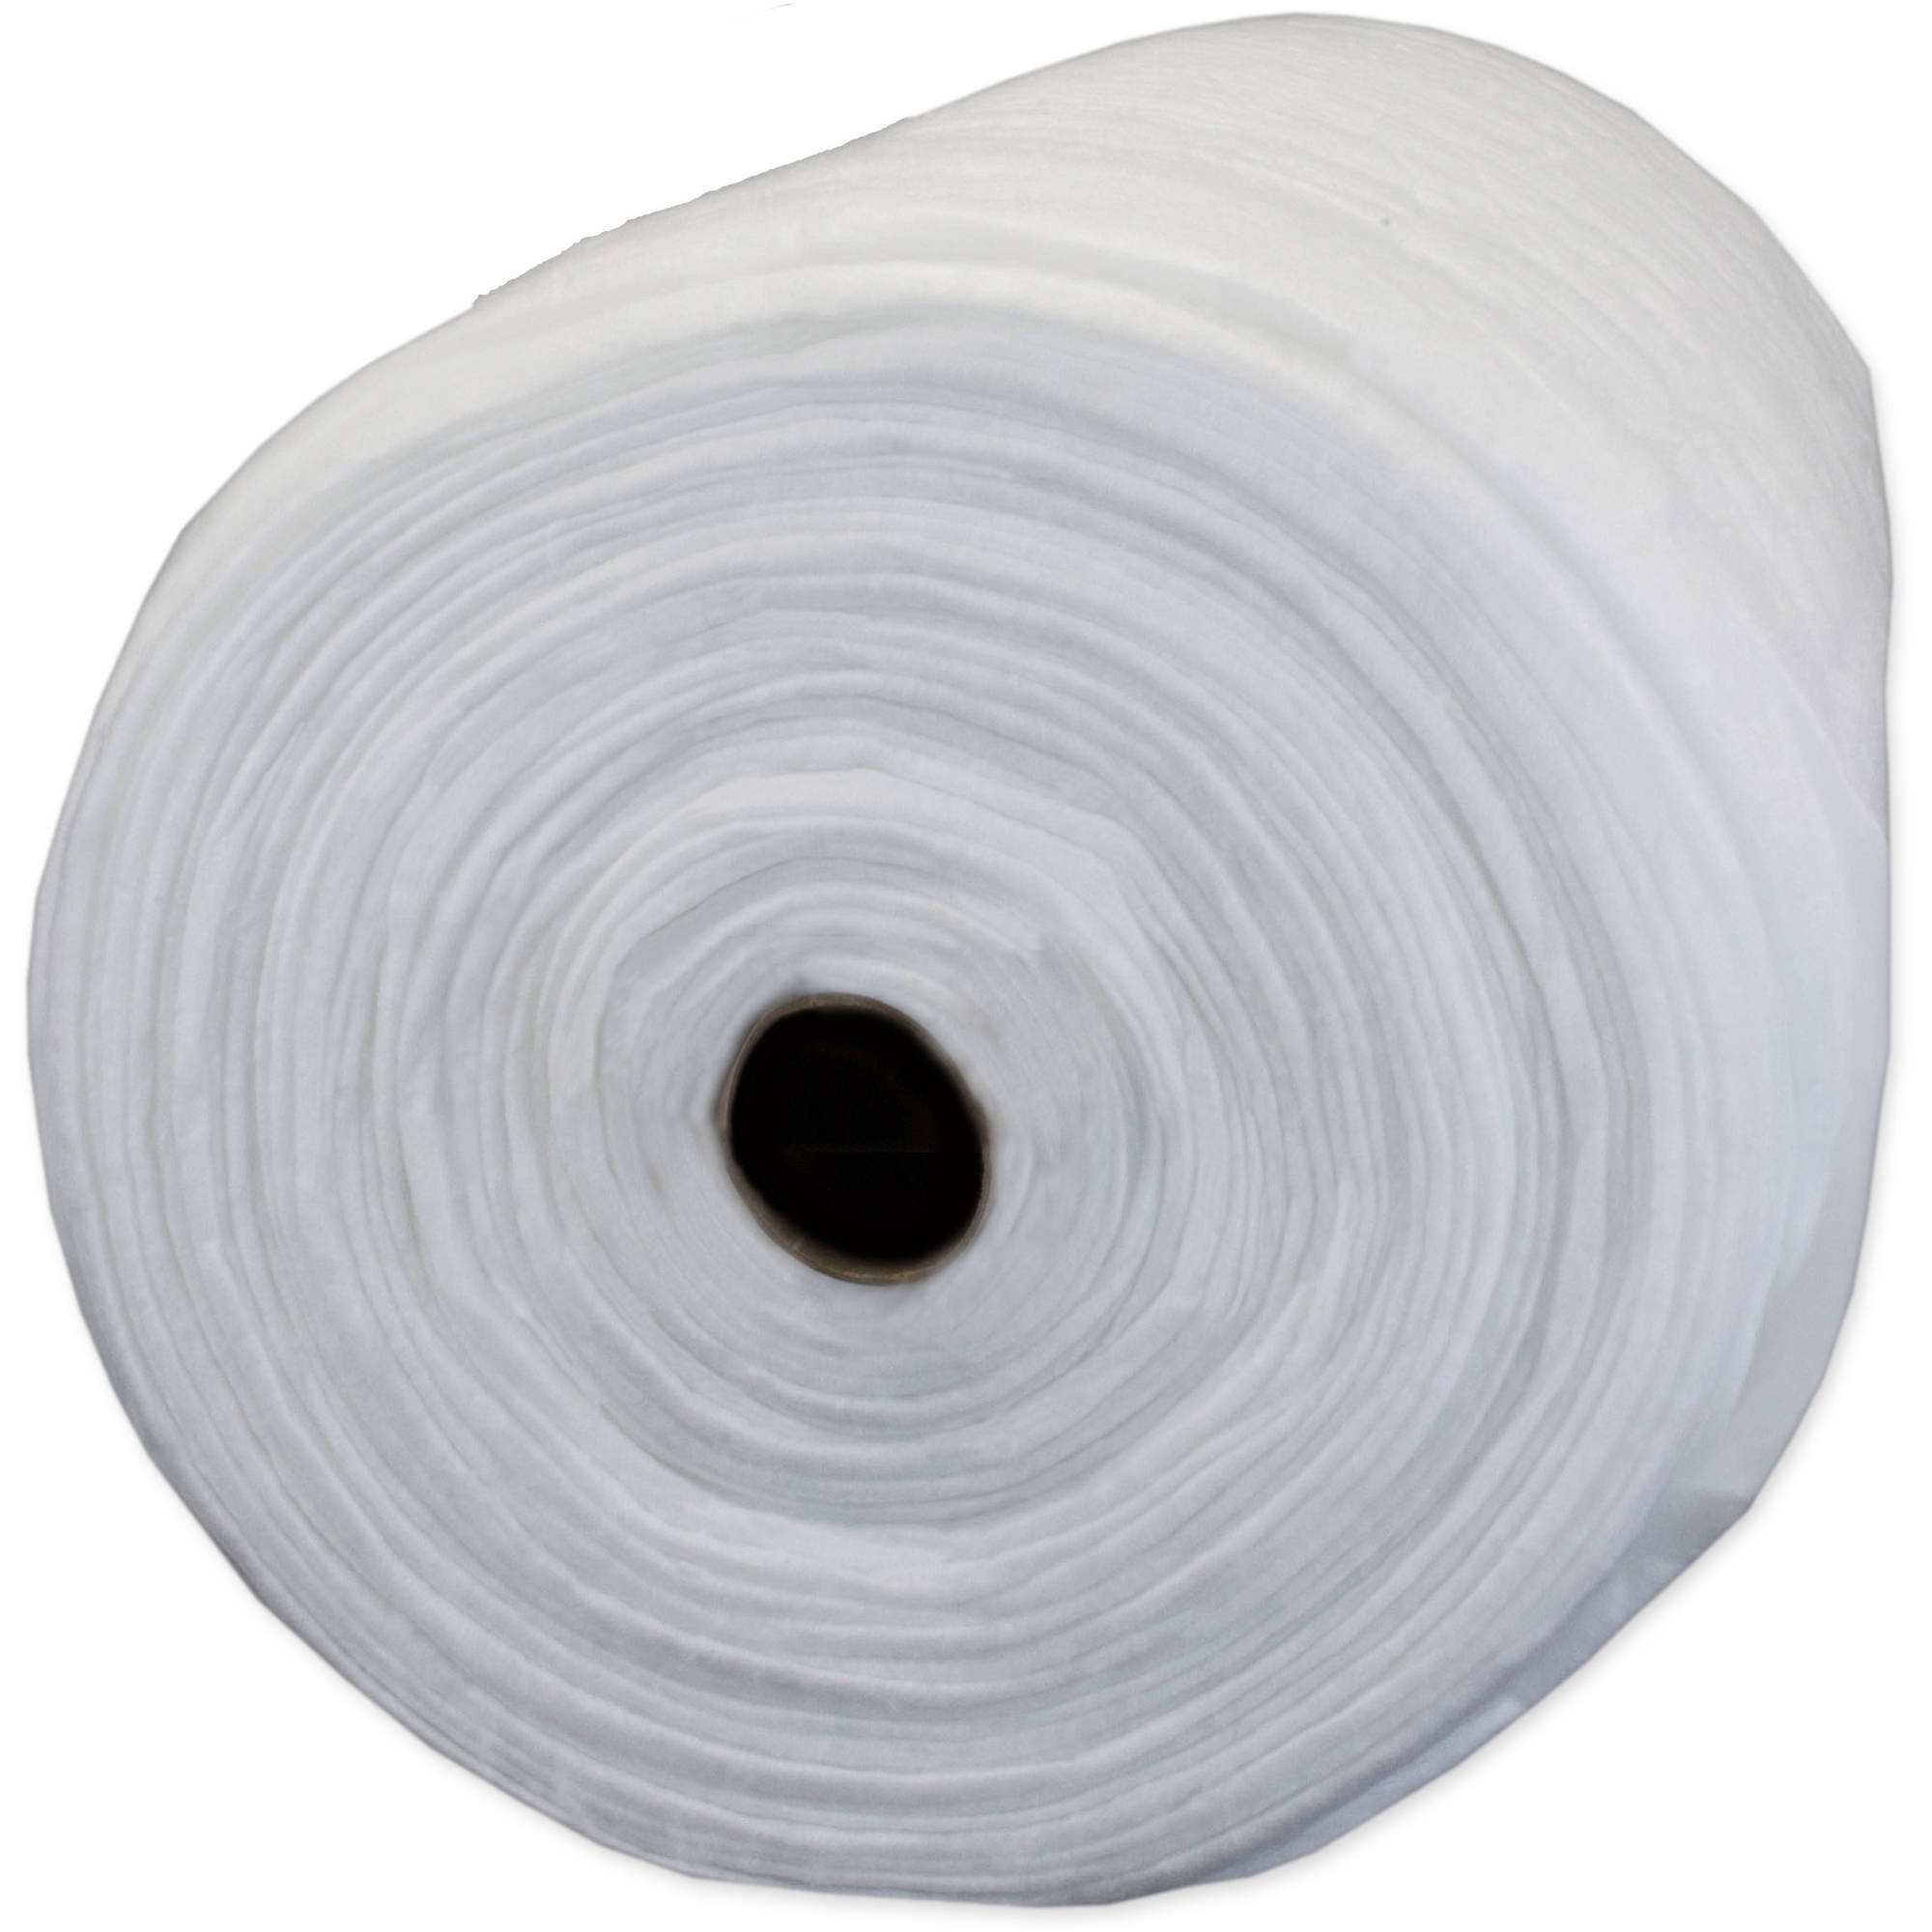 "Pellon Quilters Touch High Loft Batting, 6 oz, 96"" Wide, 20 Yard Roll"